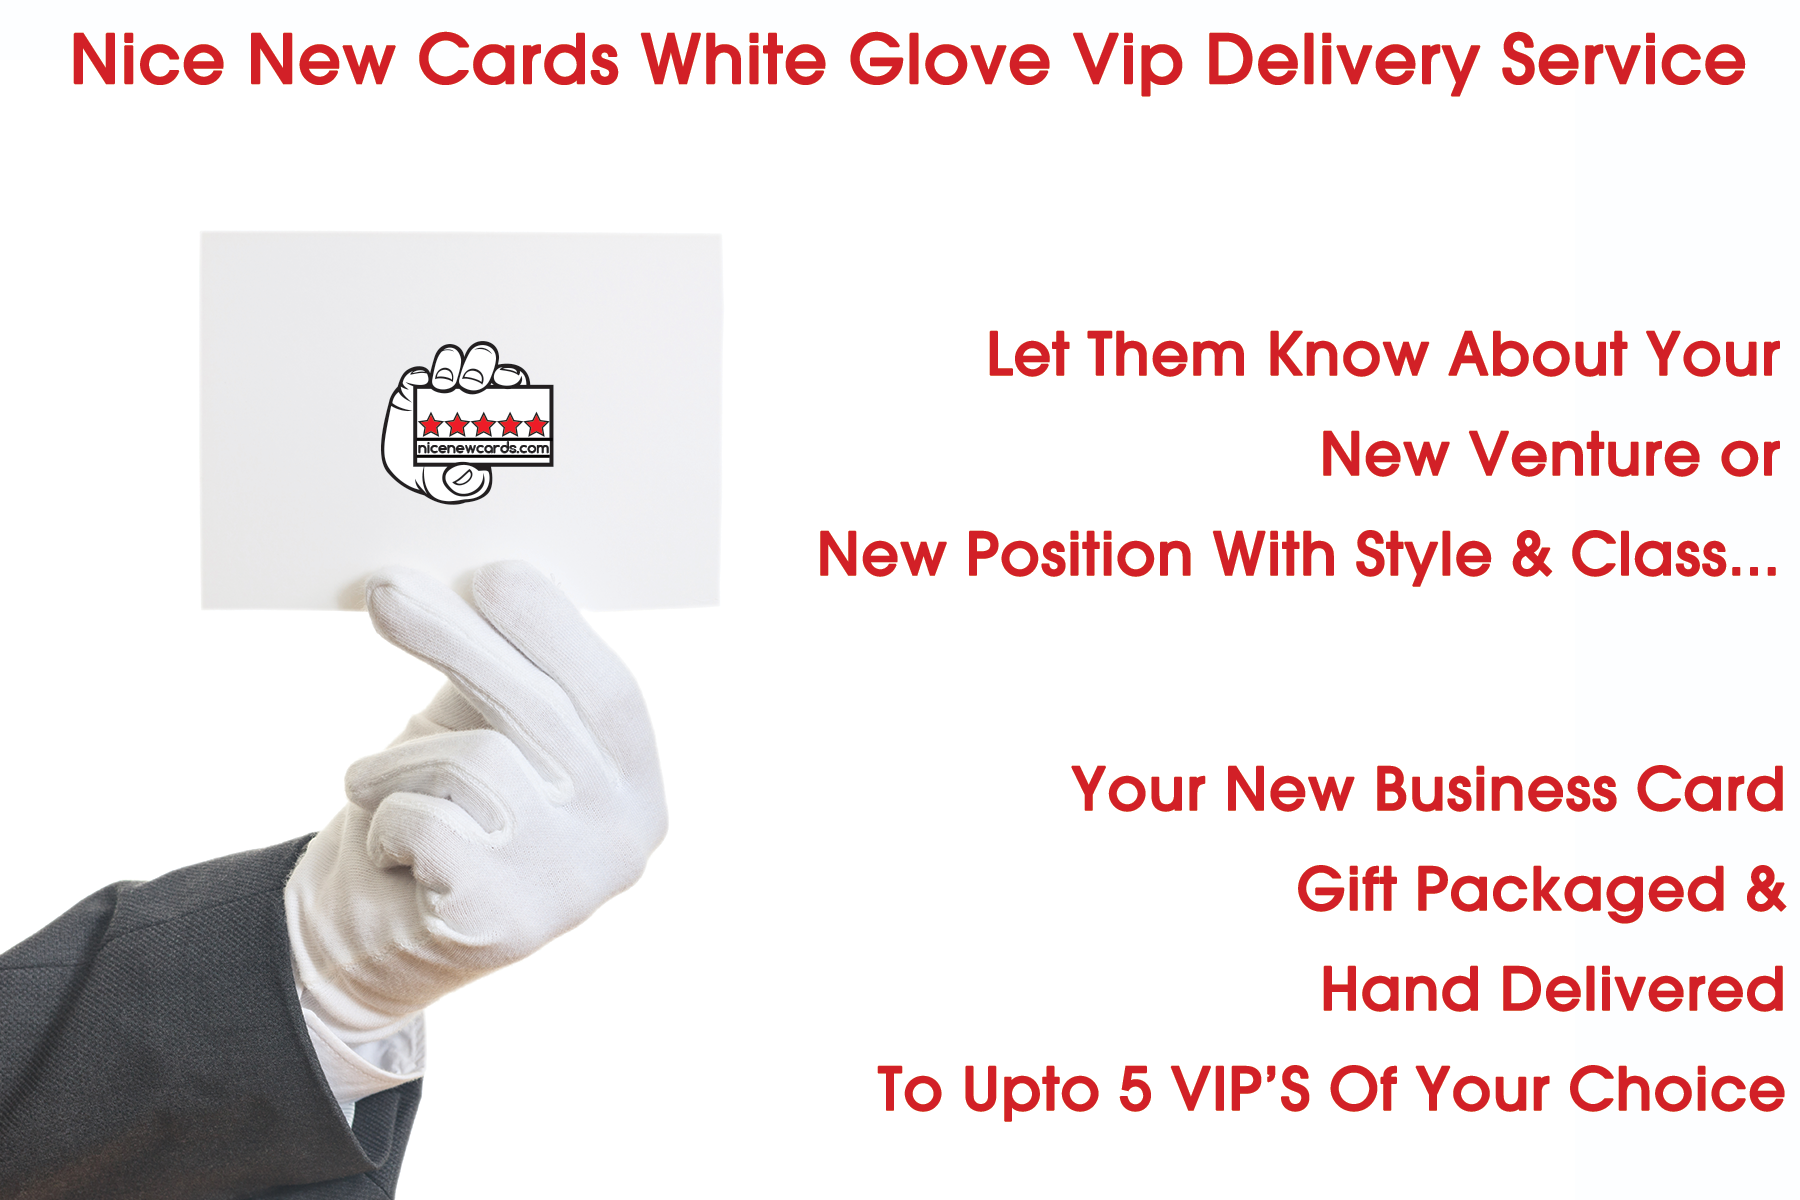 Business Cards Miami, White glove delivery service. Nice New Cards.